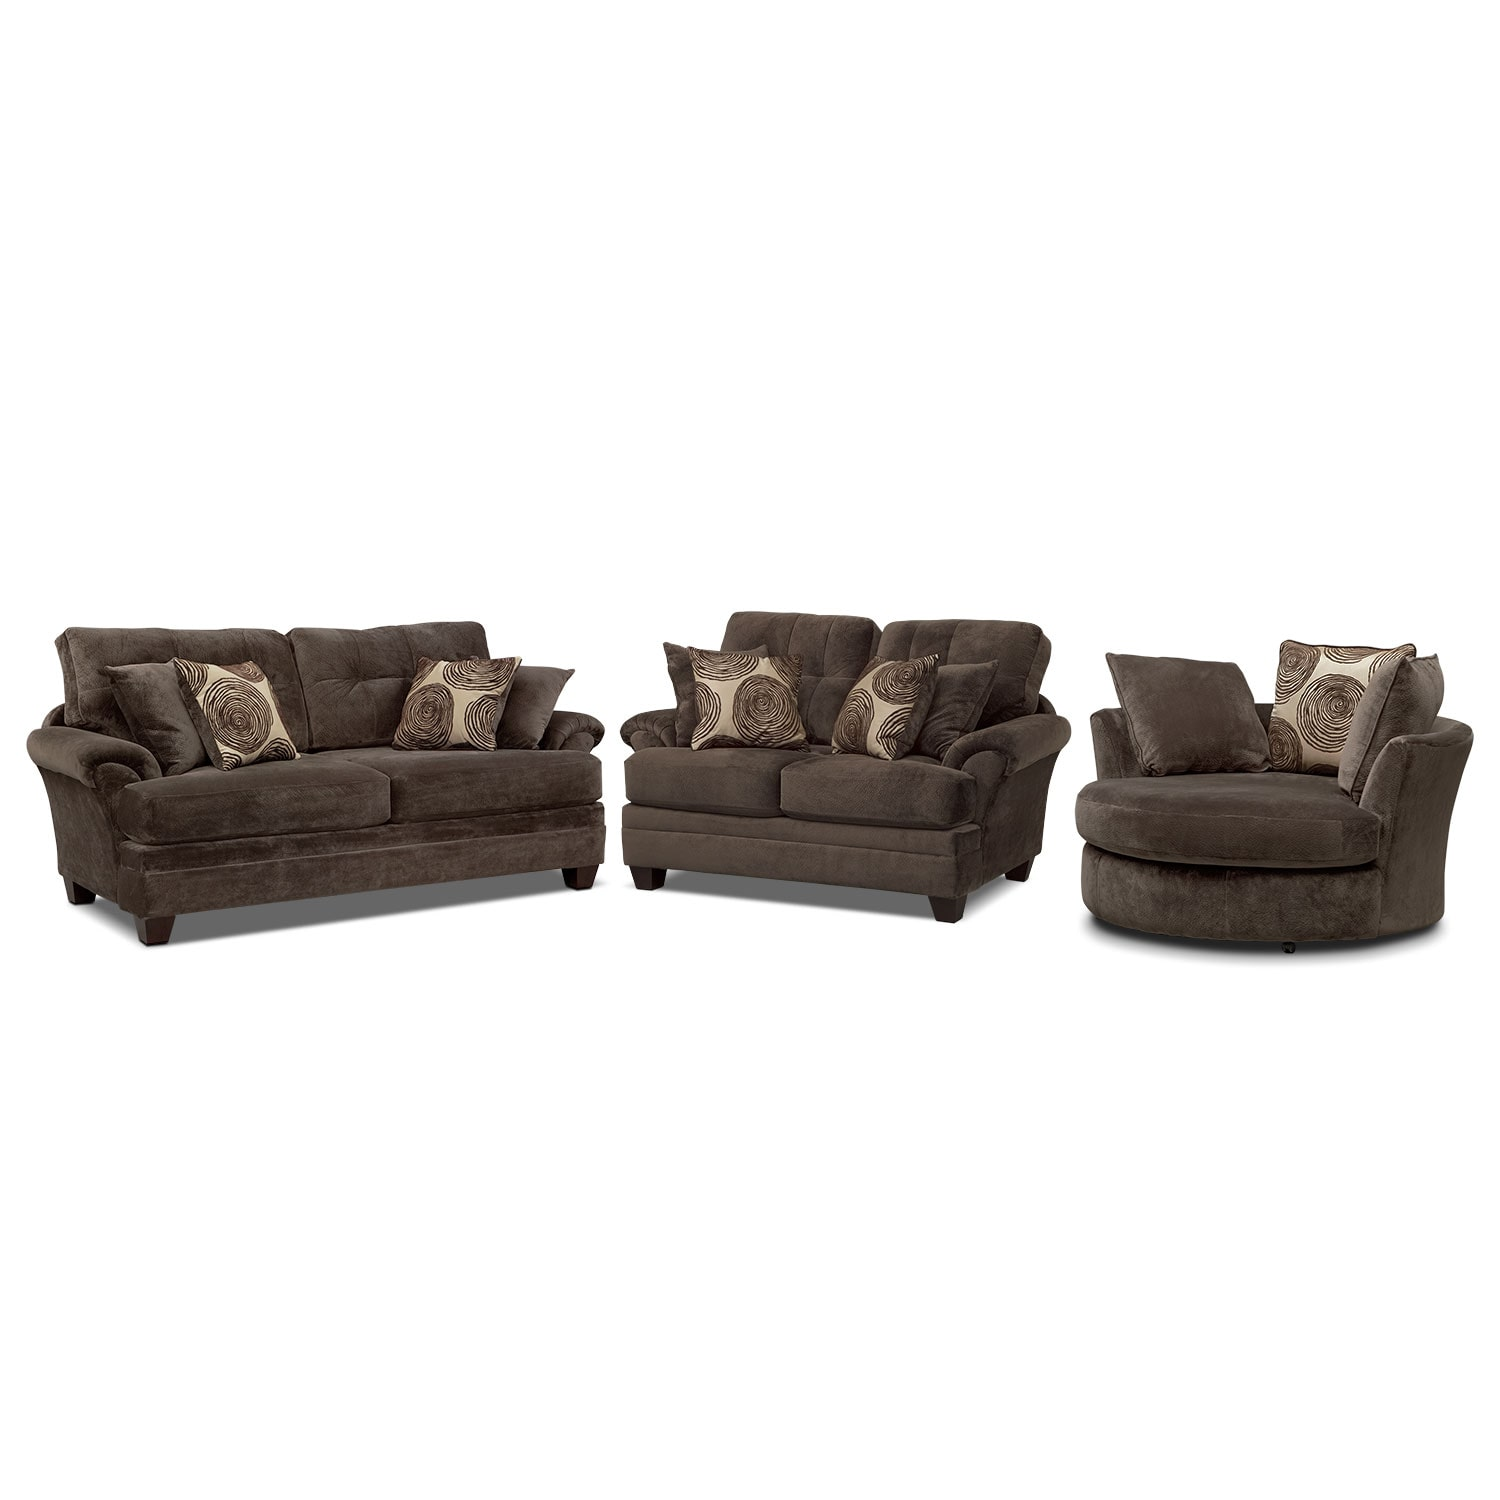 Cordelle Sofa Loveseat And Swivel Chair Set Chocolate